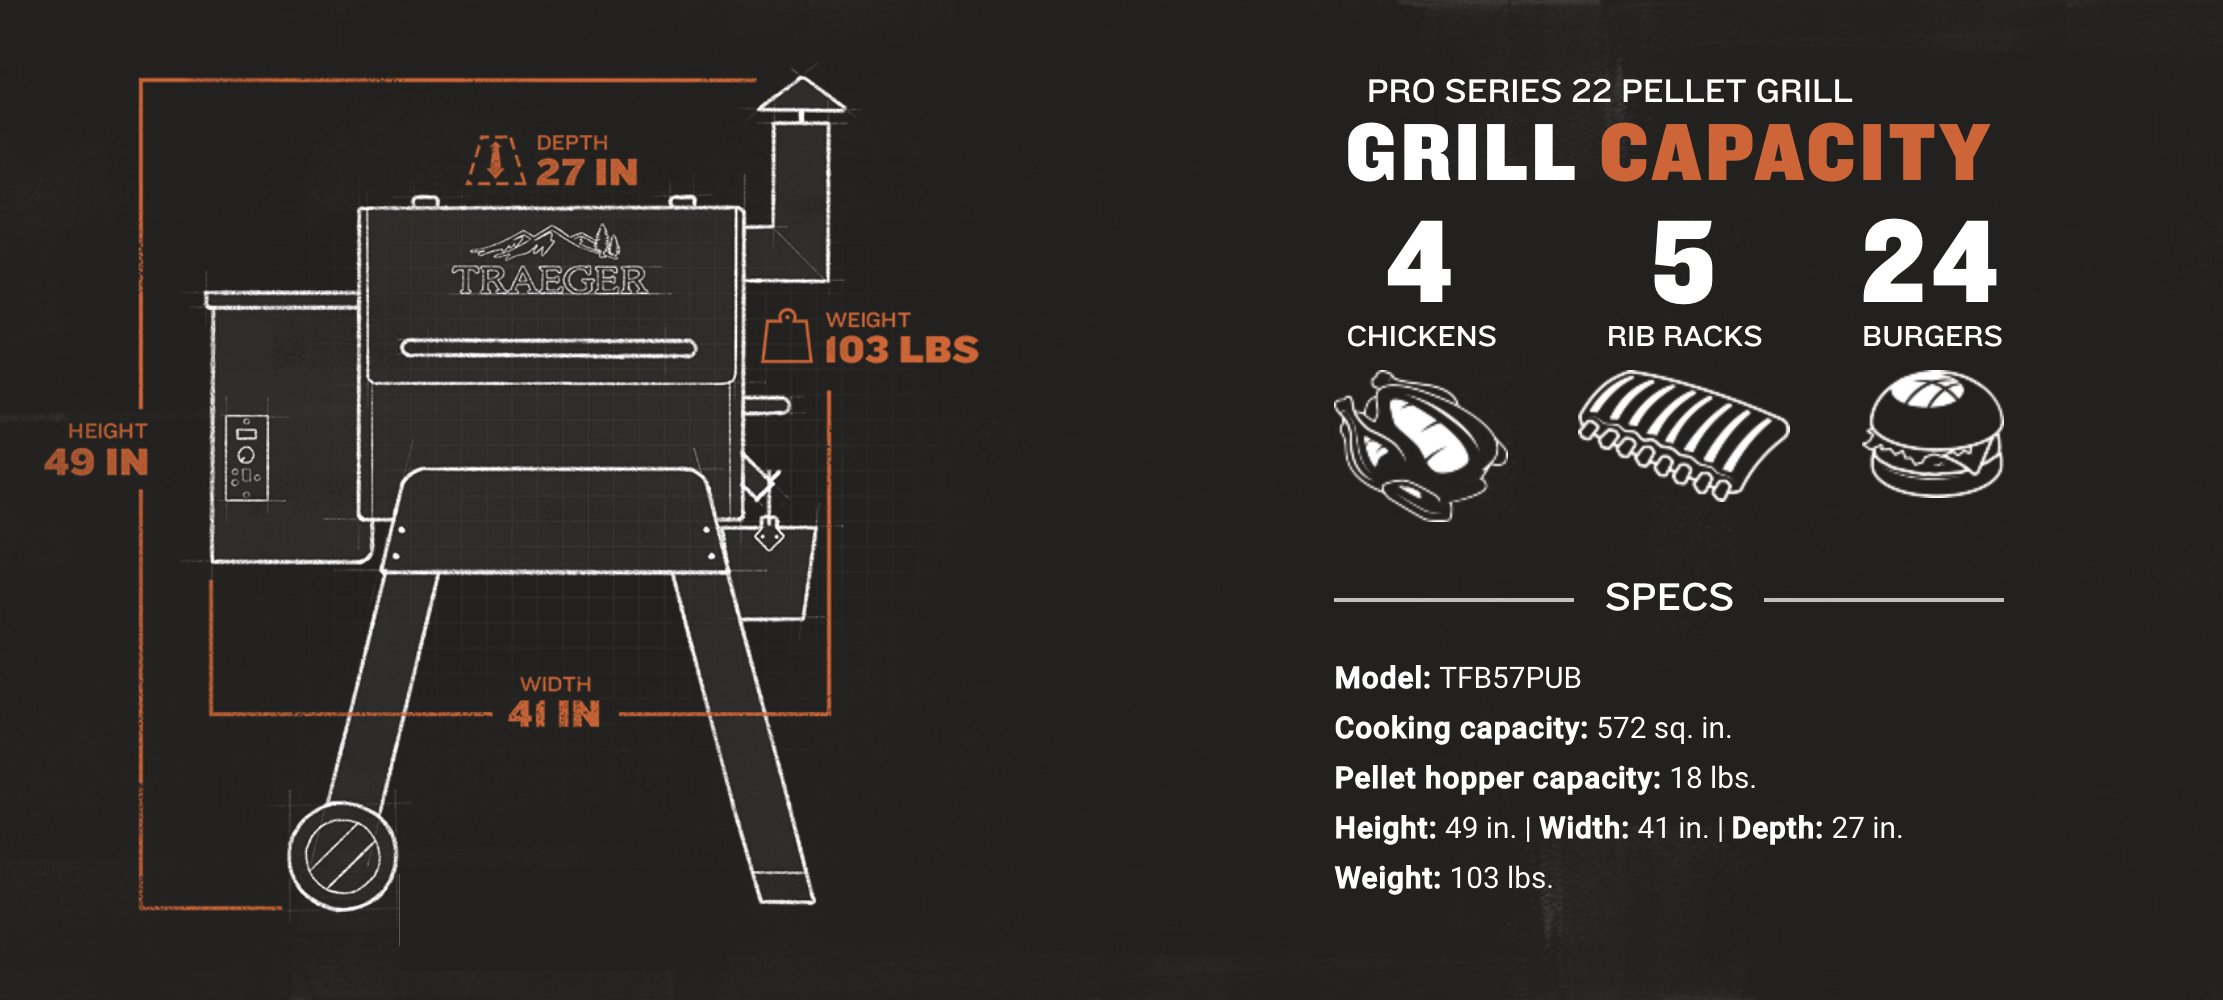 Traeger Grill Pro Series 22